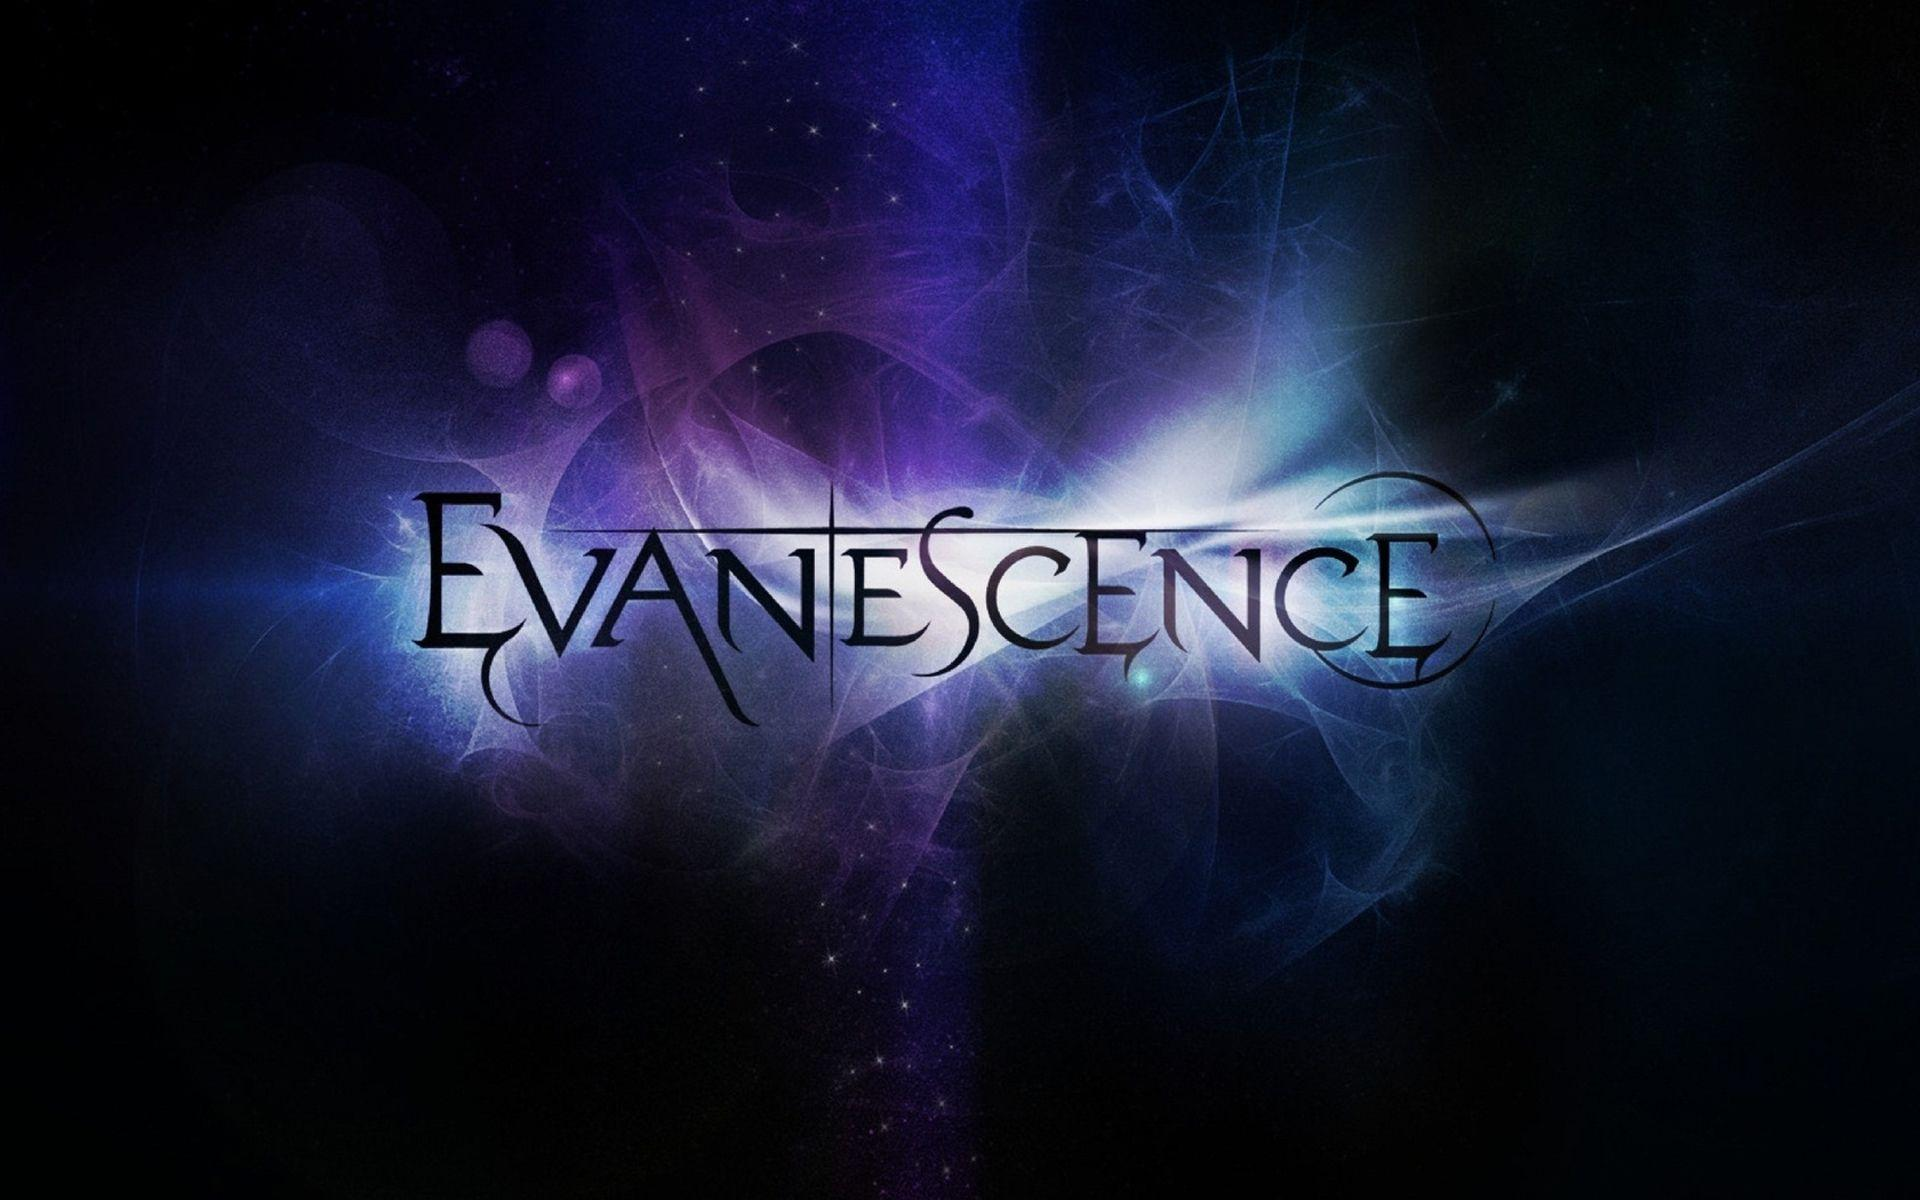 evanescence wallpapers wallpaper cave